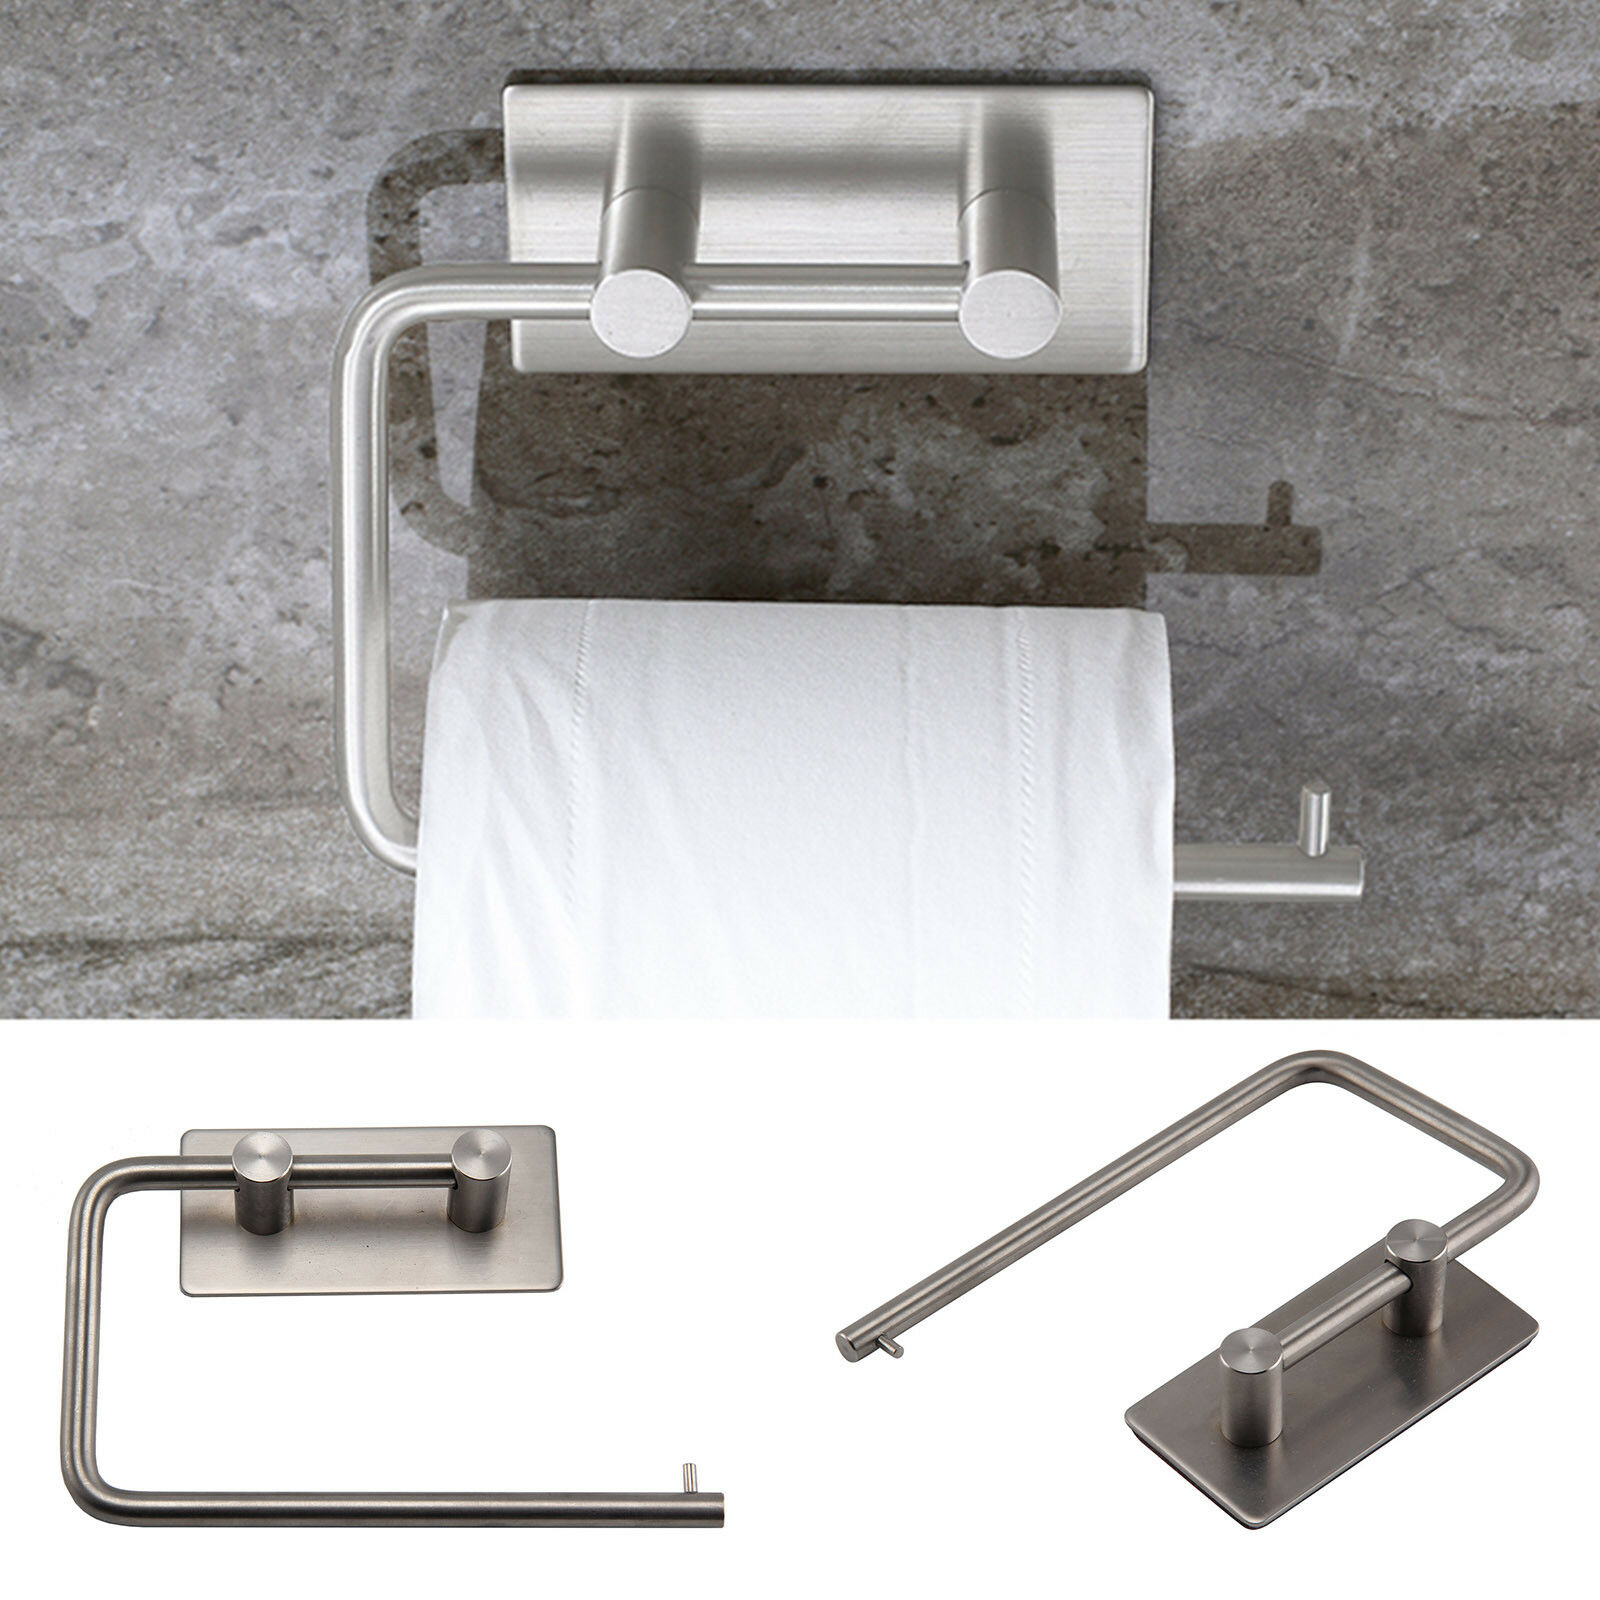 Polished Stainless Steel Toilet Roll Holder Self Adhesive Stick On ...